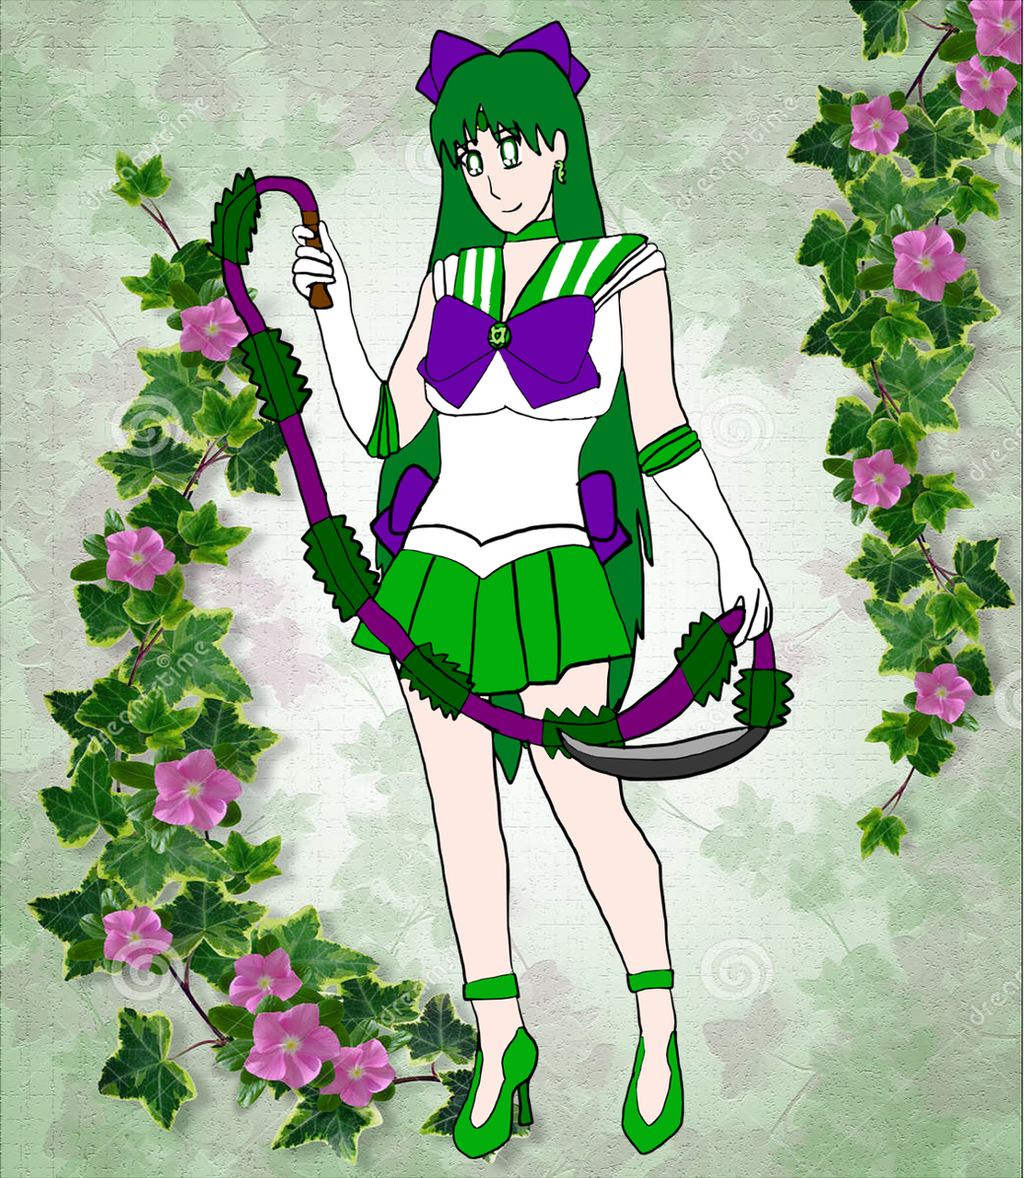 Sailor Ivy (Redux) by Trevor911